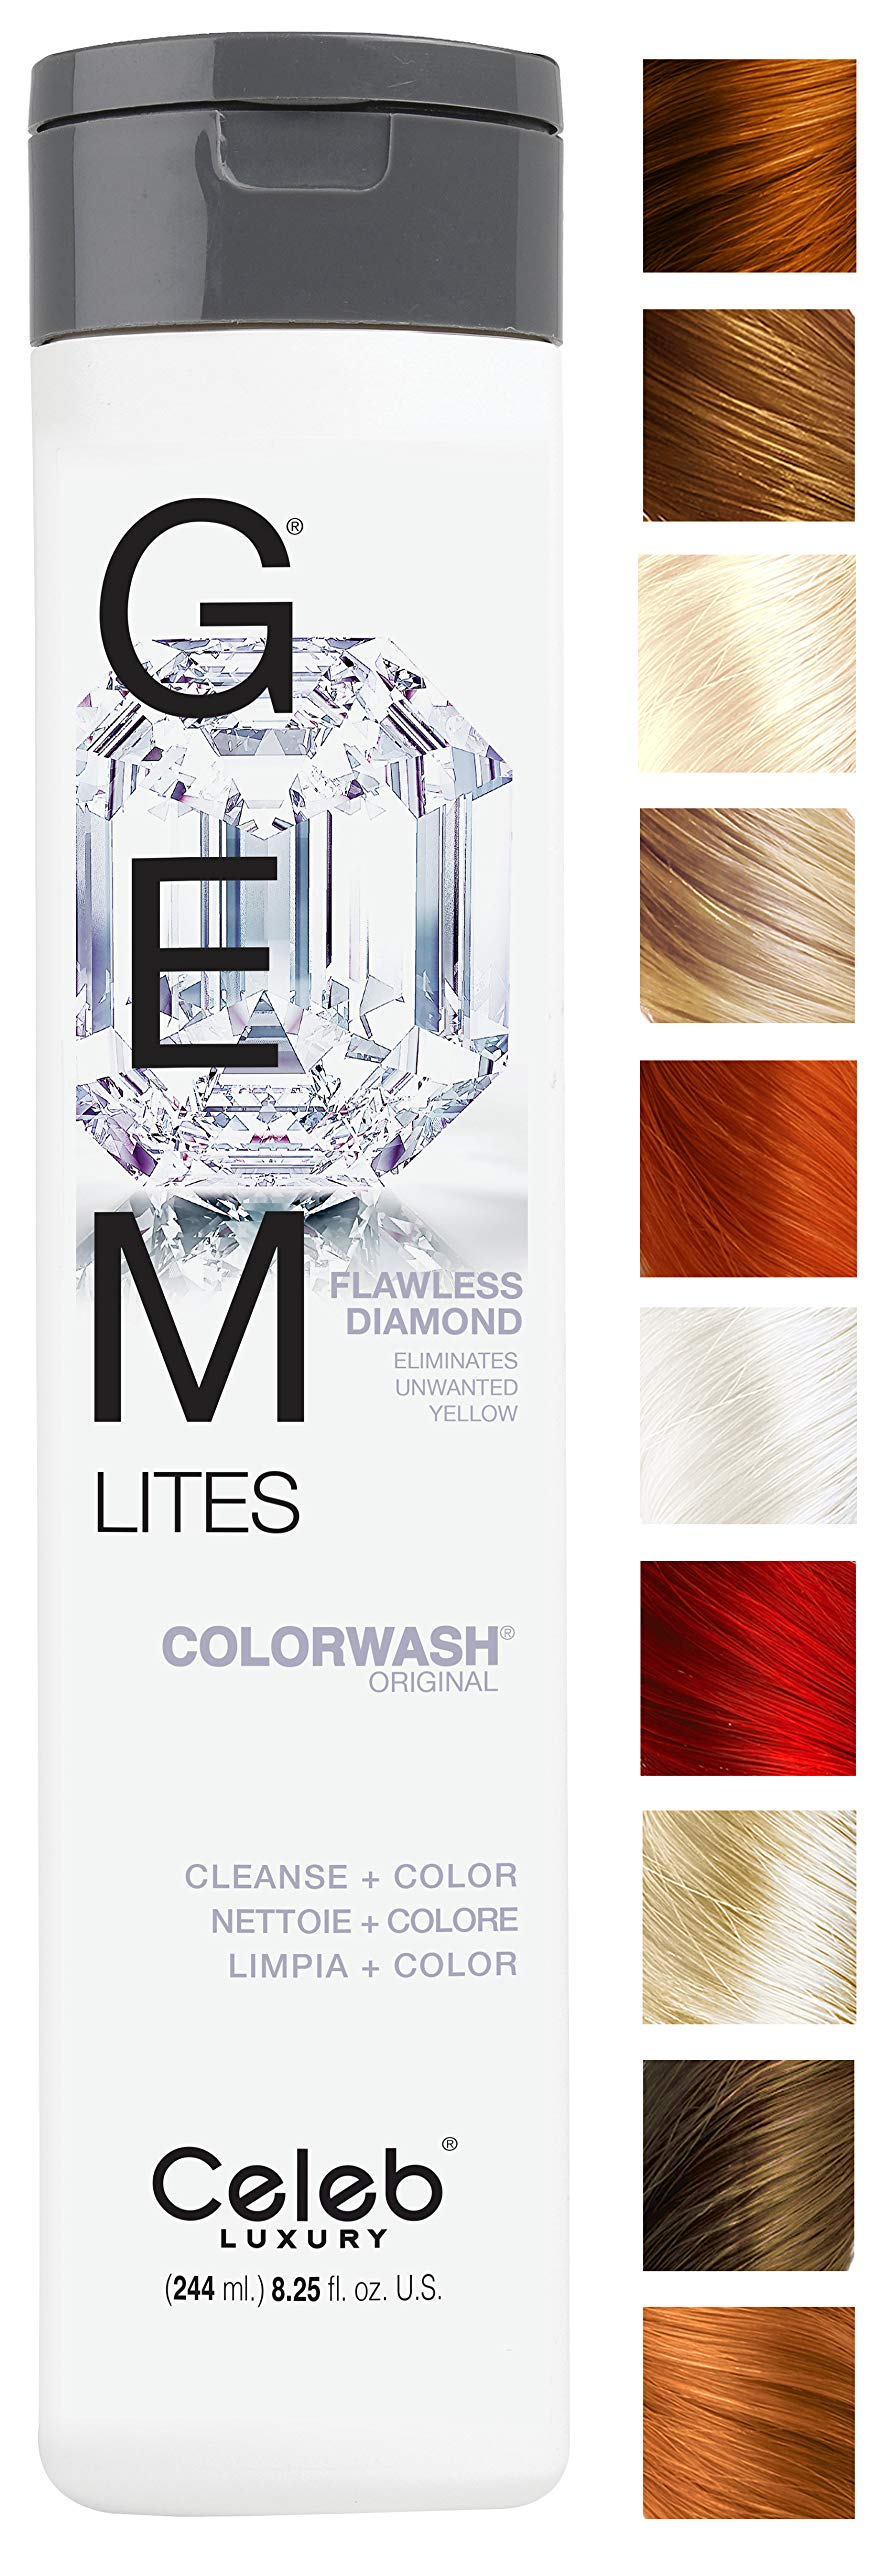 Celeb Luxury Gem Lites Colorwash: Flawless Diamond Eliminate Unwanted Yellow, Color Depositing Shampoo, Stops Fade, Cleanse + Color, Sulfate-Free, Cruelty-Free, 100% Vegan, Better than Purple Shampoo by CELEB LUXURY